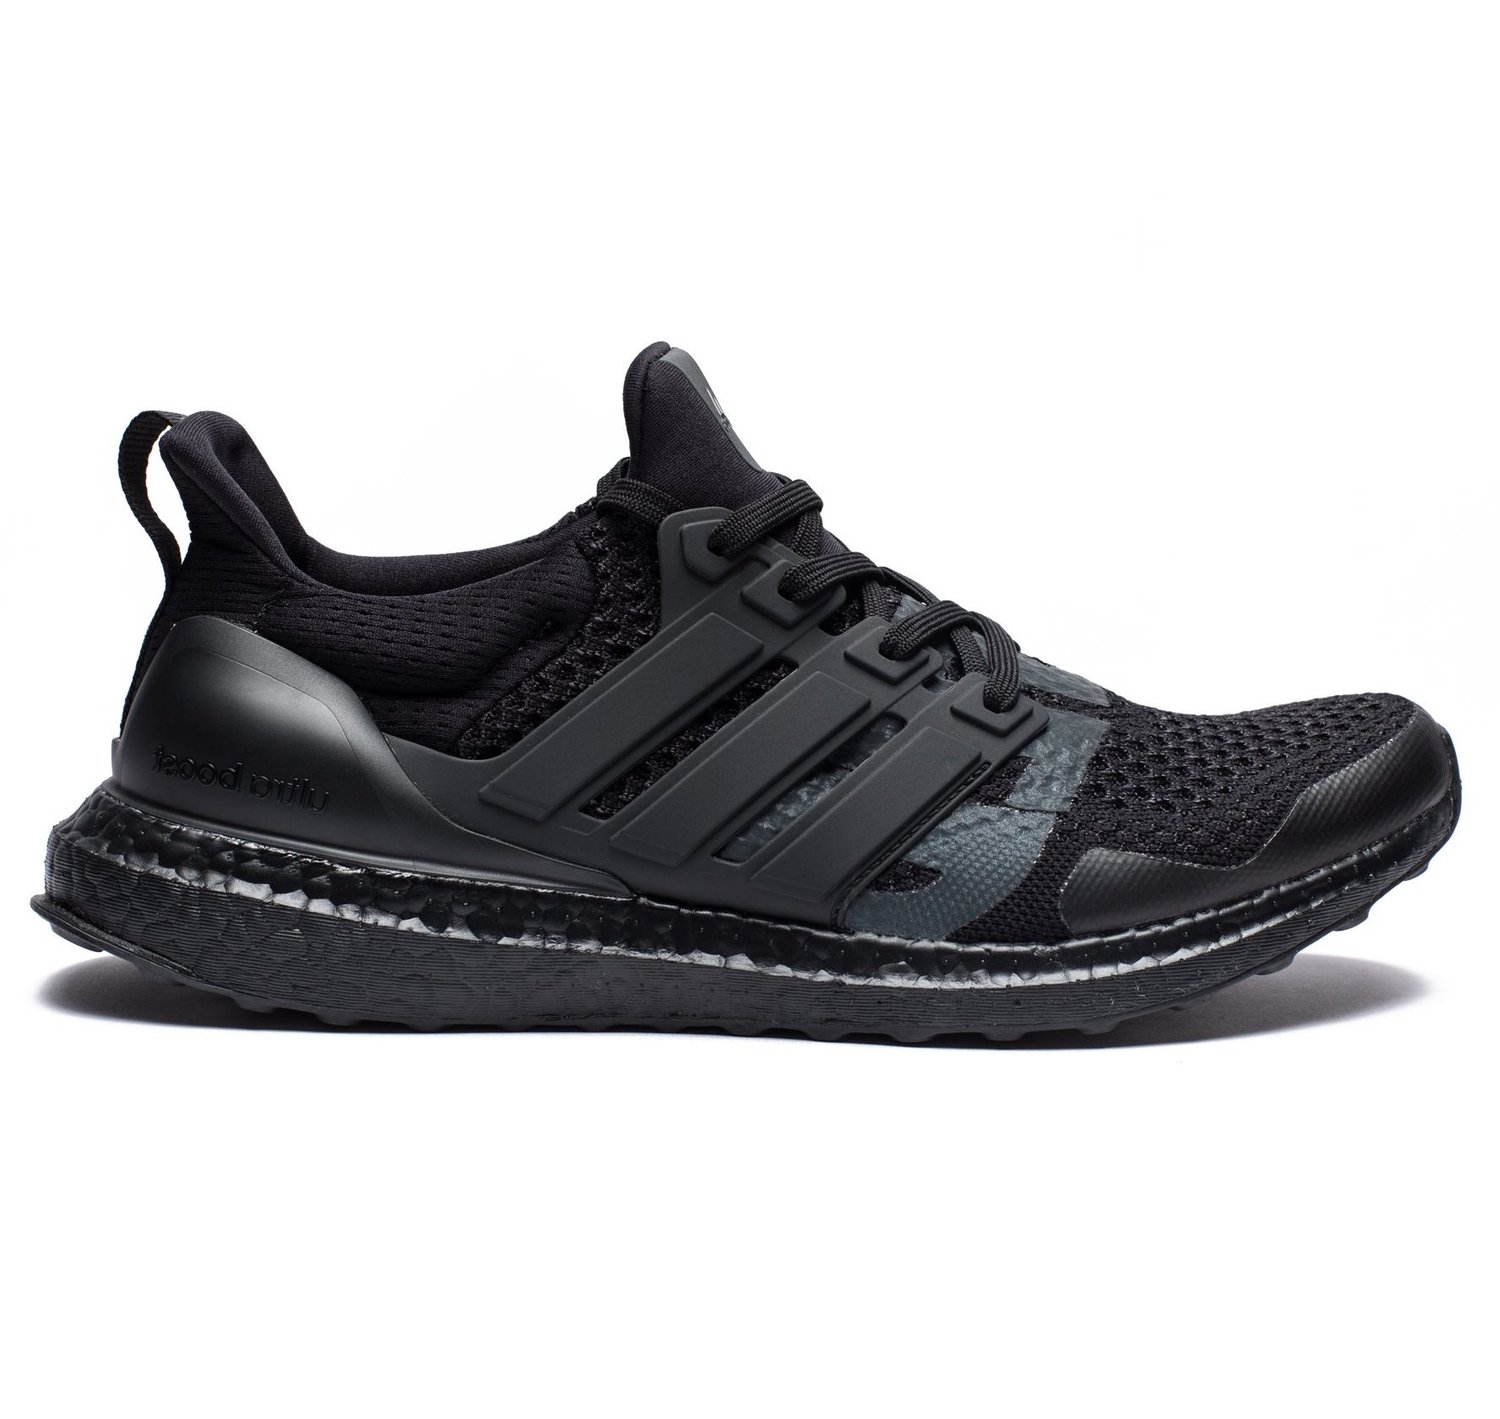 purchase cheap 02a15 a399c Now Available: Undefeated x adidas UltraBOOST 1.0